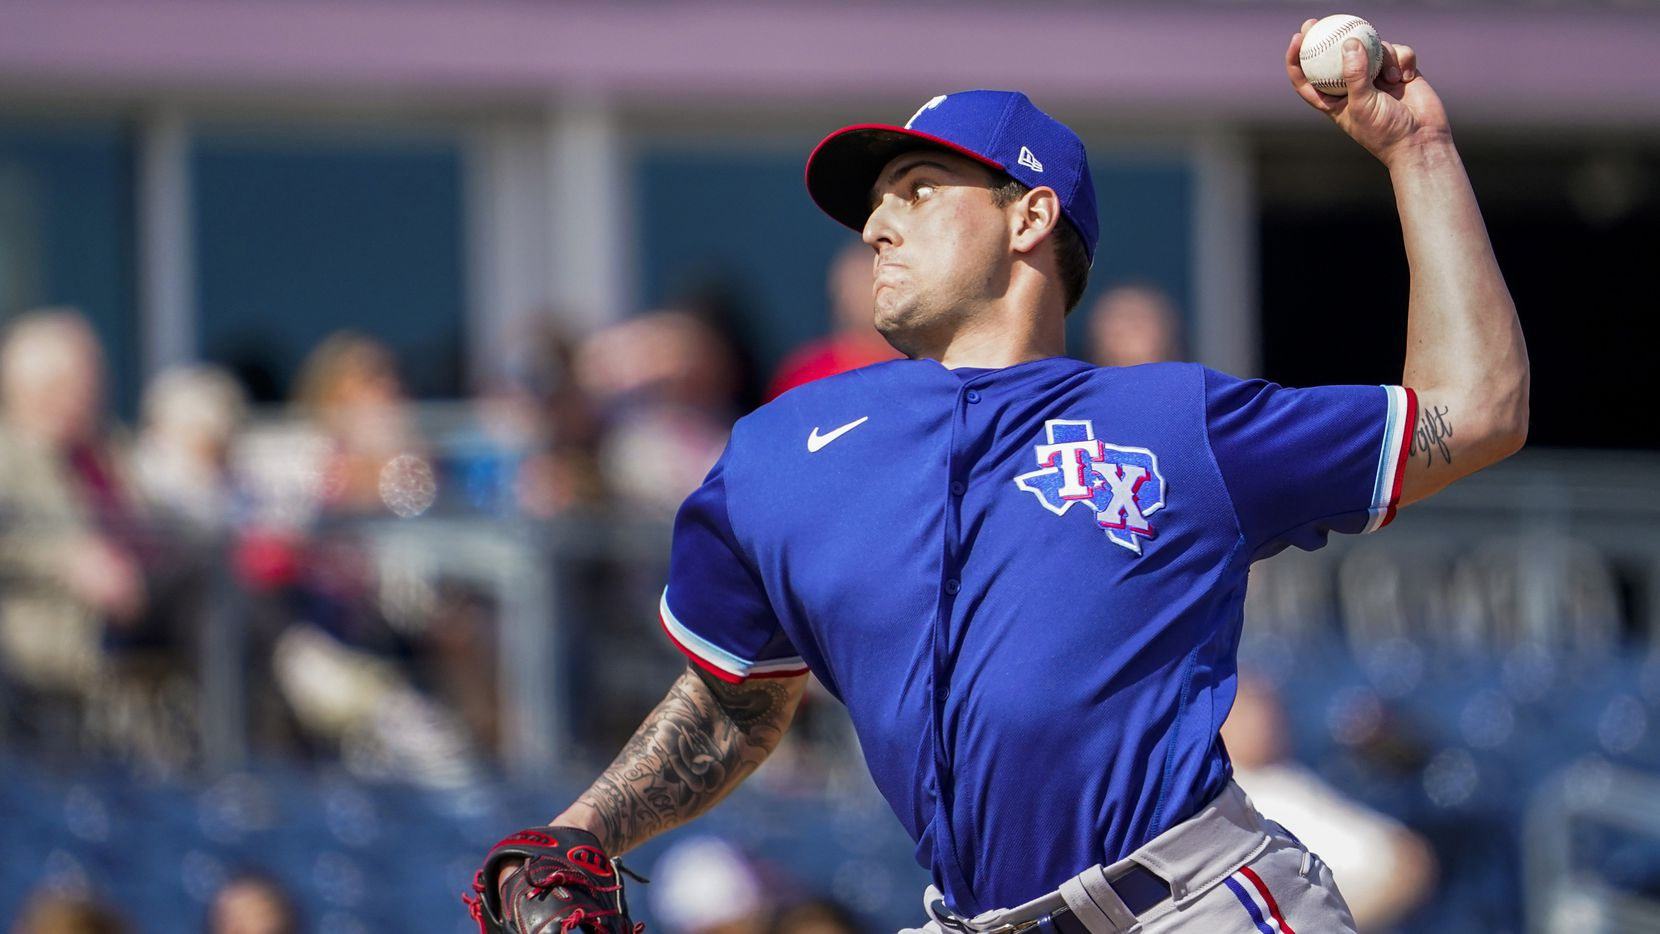 Texas Rangers pitcher Joe Palumbo pitches during the first inning of a spring training game against the Seattle Mariners at Peoria Sports Complex on Sunday, Feb. 23, 2020, in Peoria, Ariz.